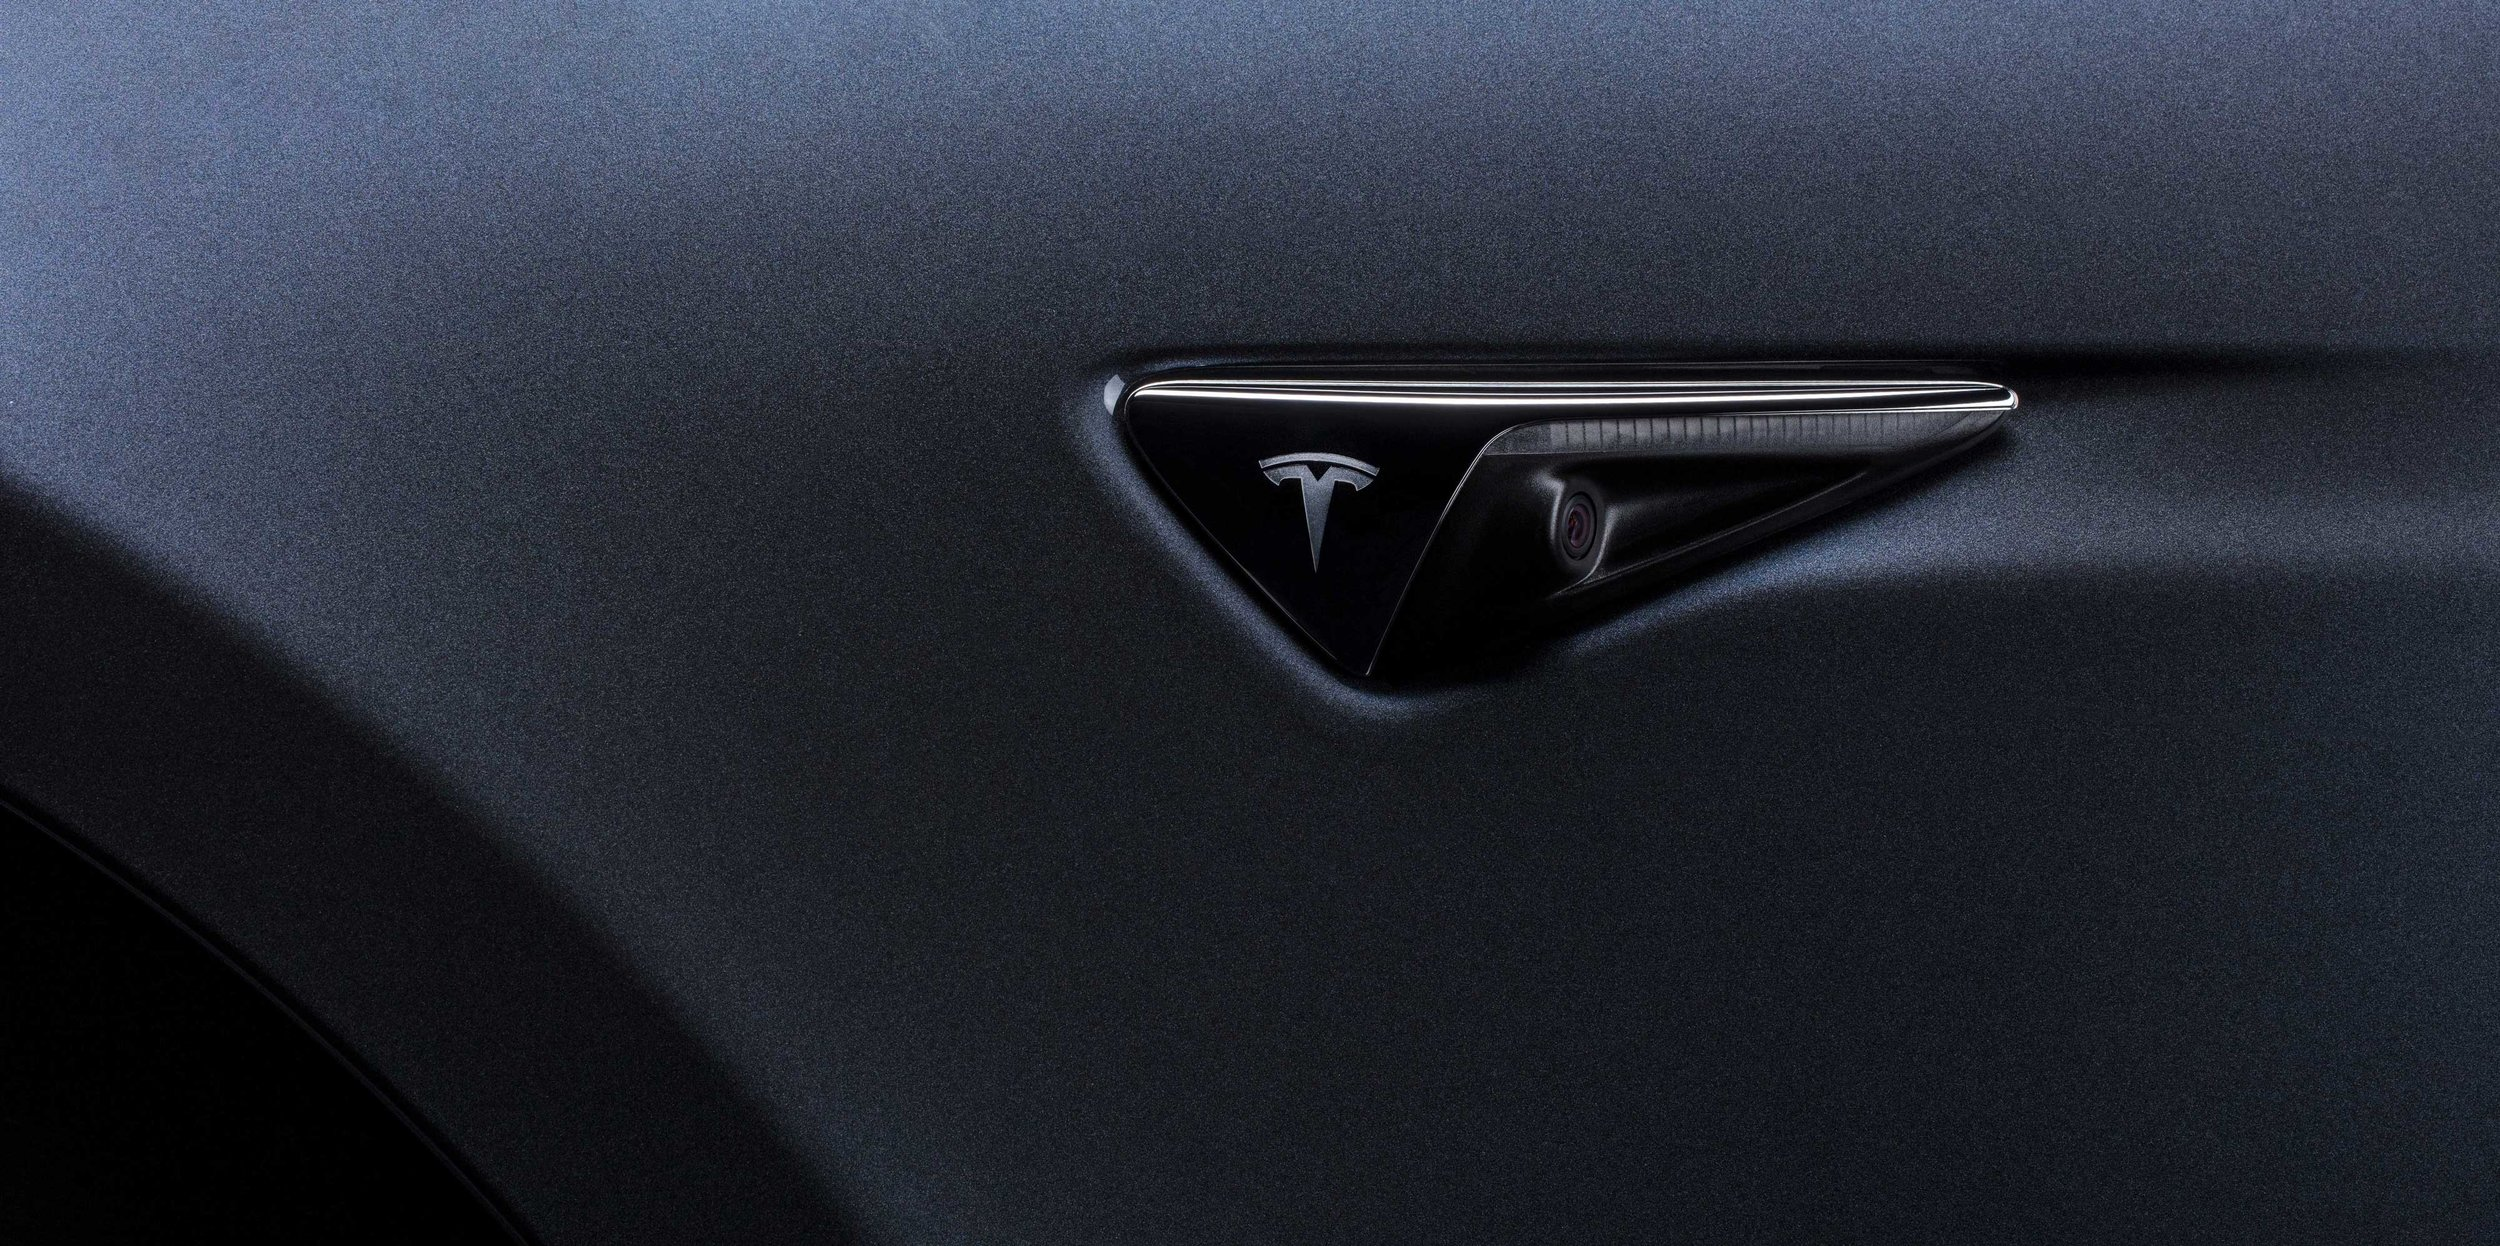 TESLA-CAR-CAMERA-BADGE-UPDATE-2019.jpg